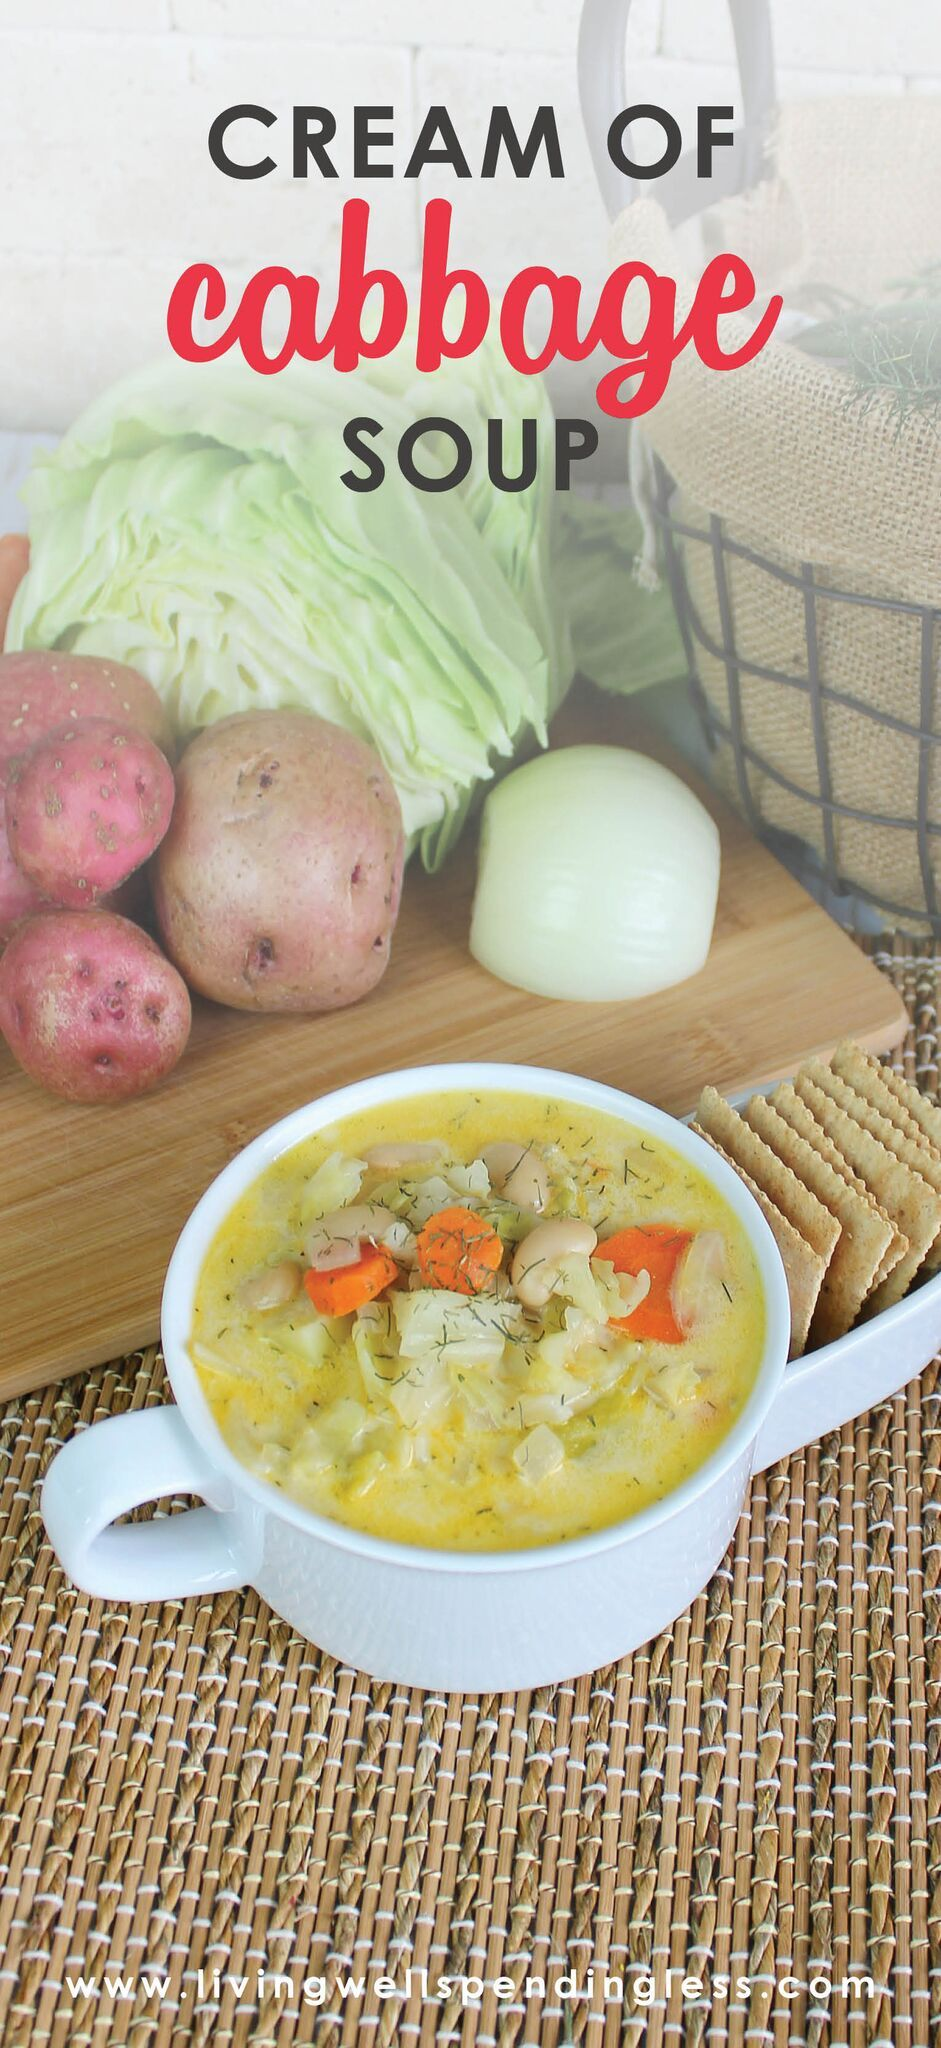 Cream of cabbage soup vegetarian soup cabbage soup and vegetable cream of cabbage soup nutritional recipeswinter vegetablesvegetarian soupvegetarian recipesfood network forumfinder Image collections